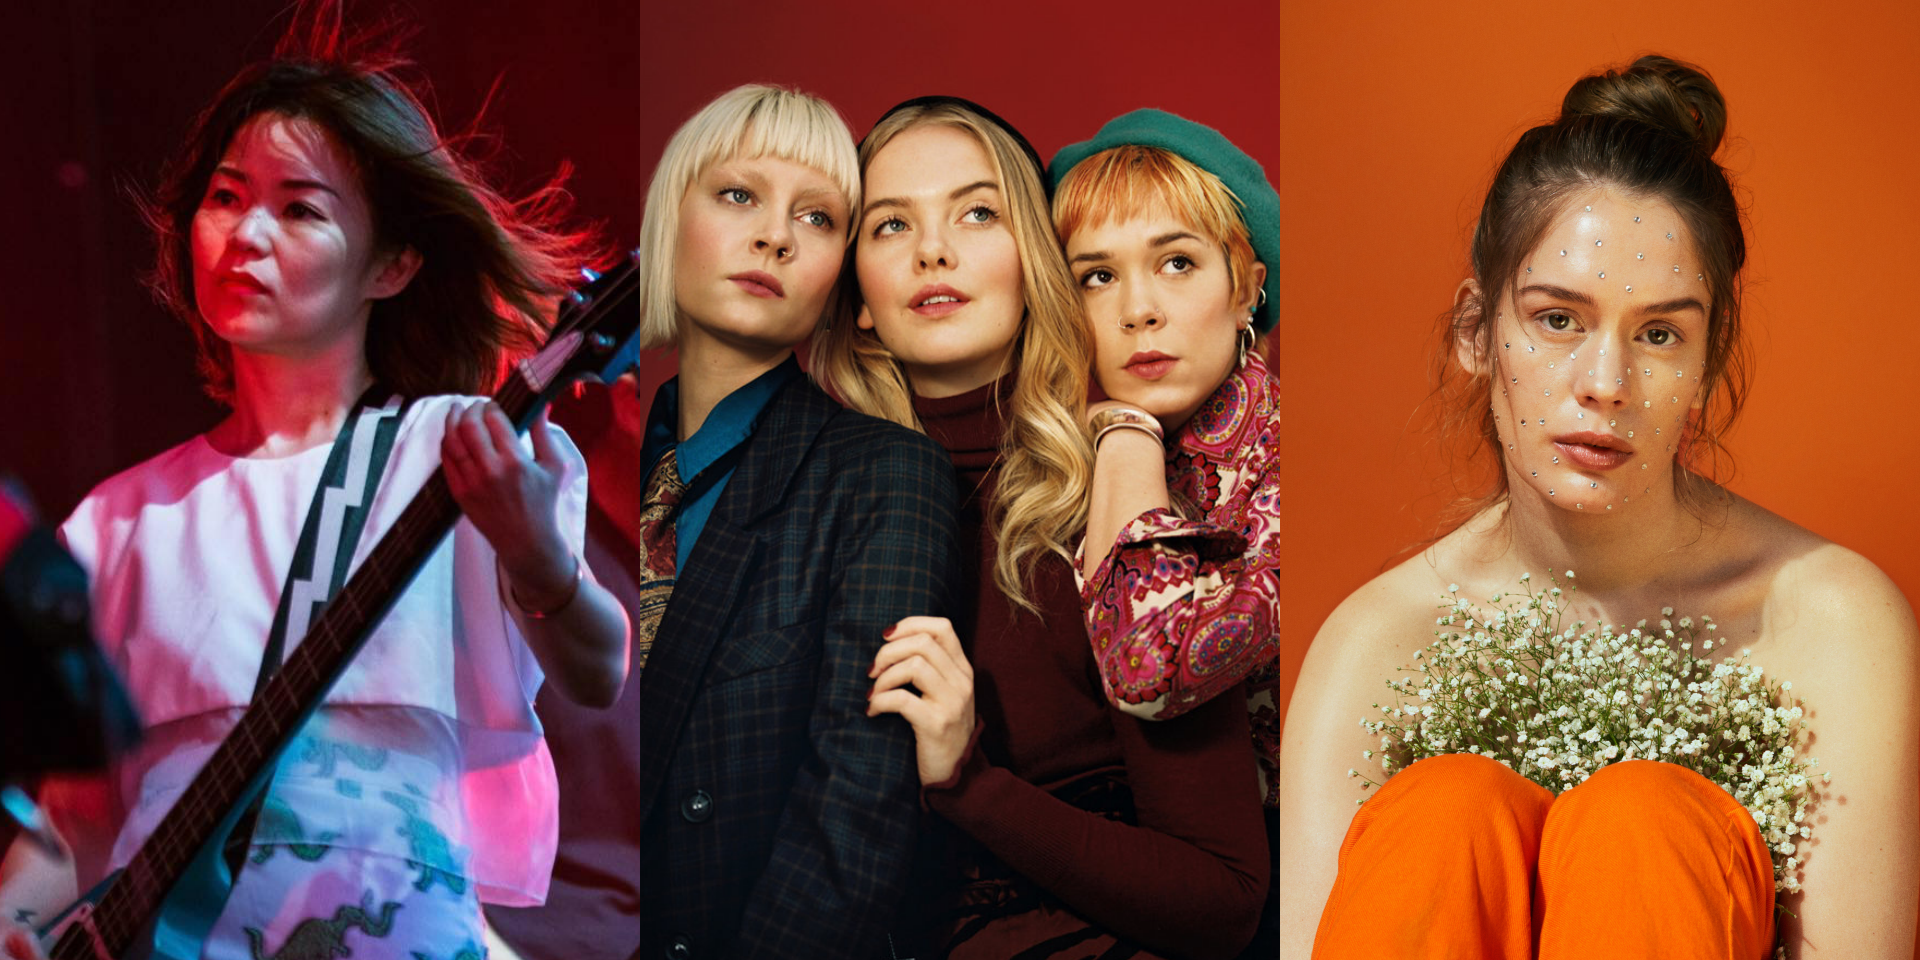 Alex Blake Charlie Sessions announces full lineup, including Anna of the North, Dream Wife and more